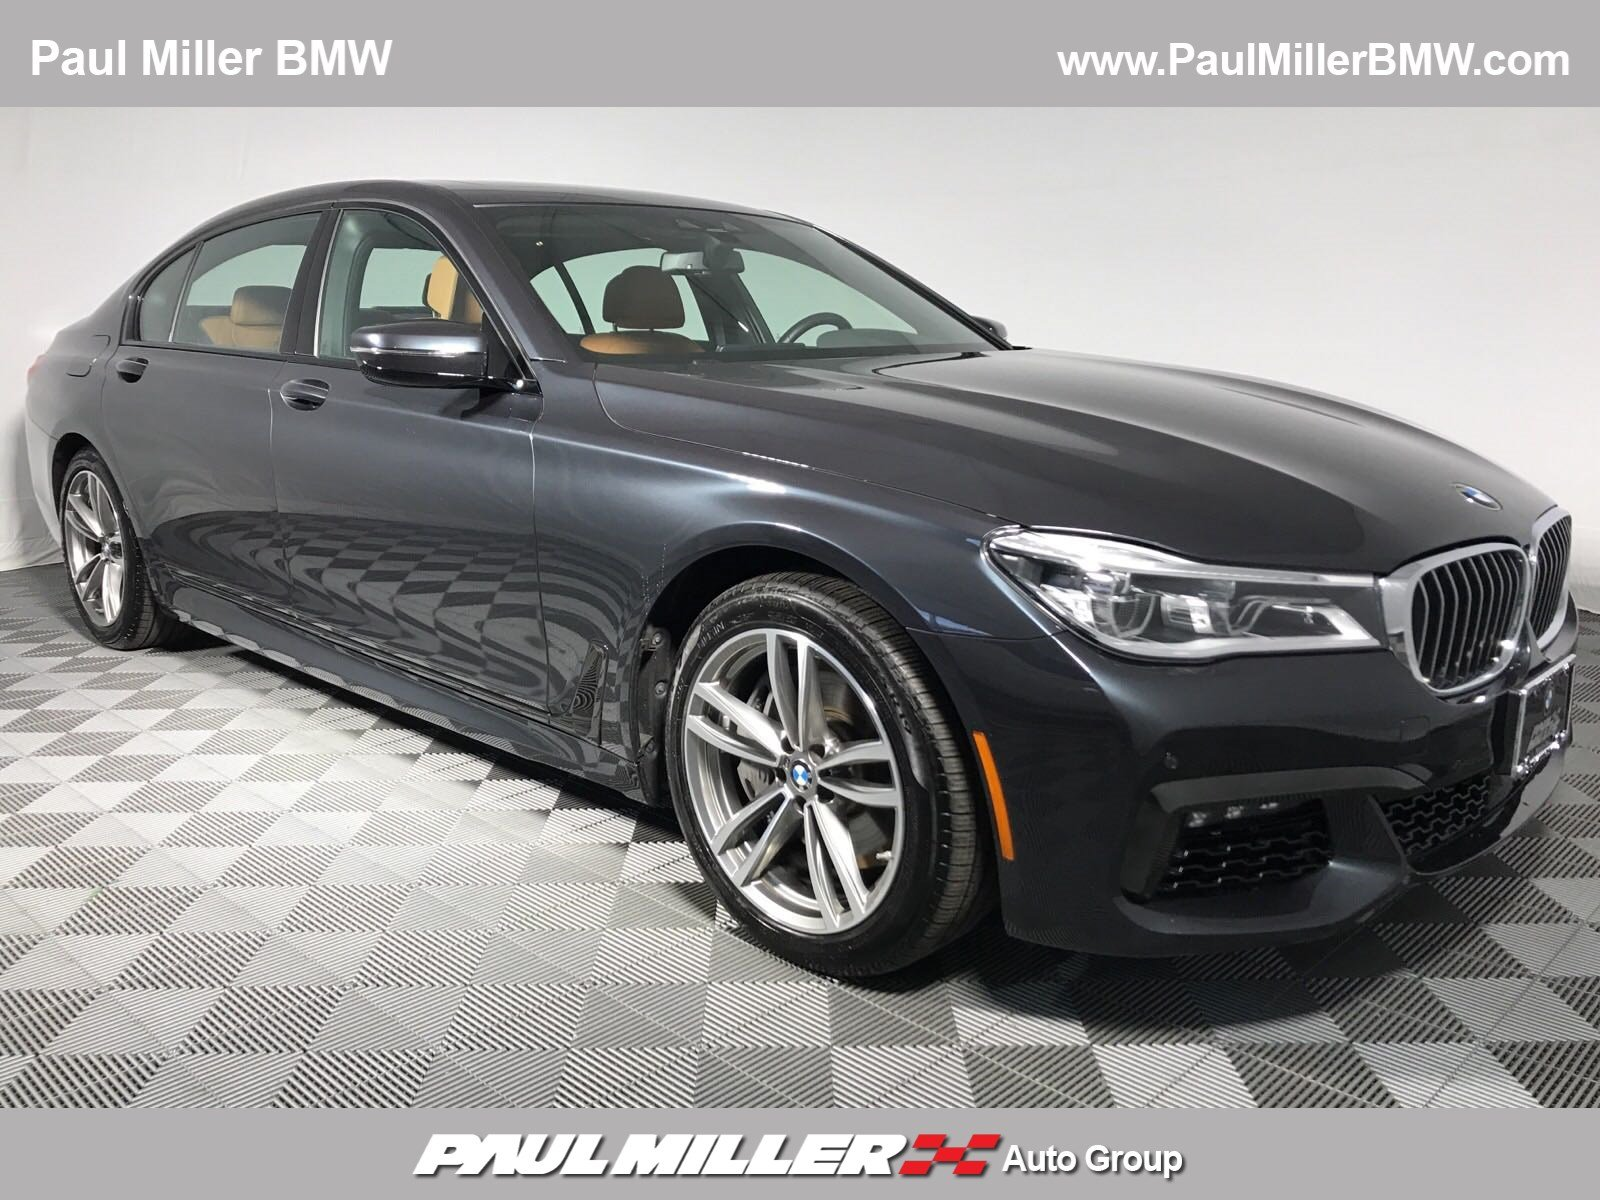 Pre Owned 2018 BMW 7 Series 750i xDrive 4dr Car in Wayne L